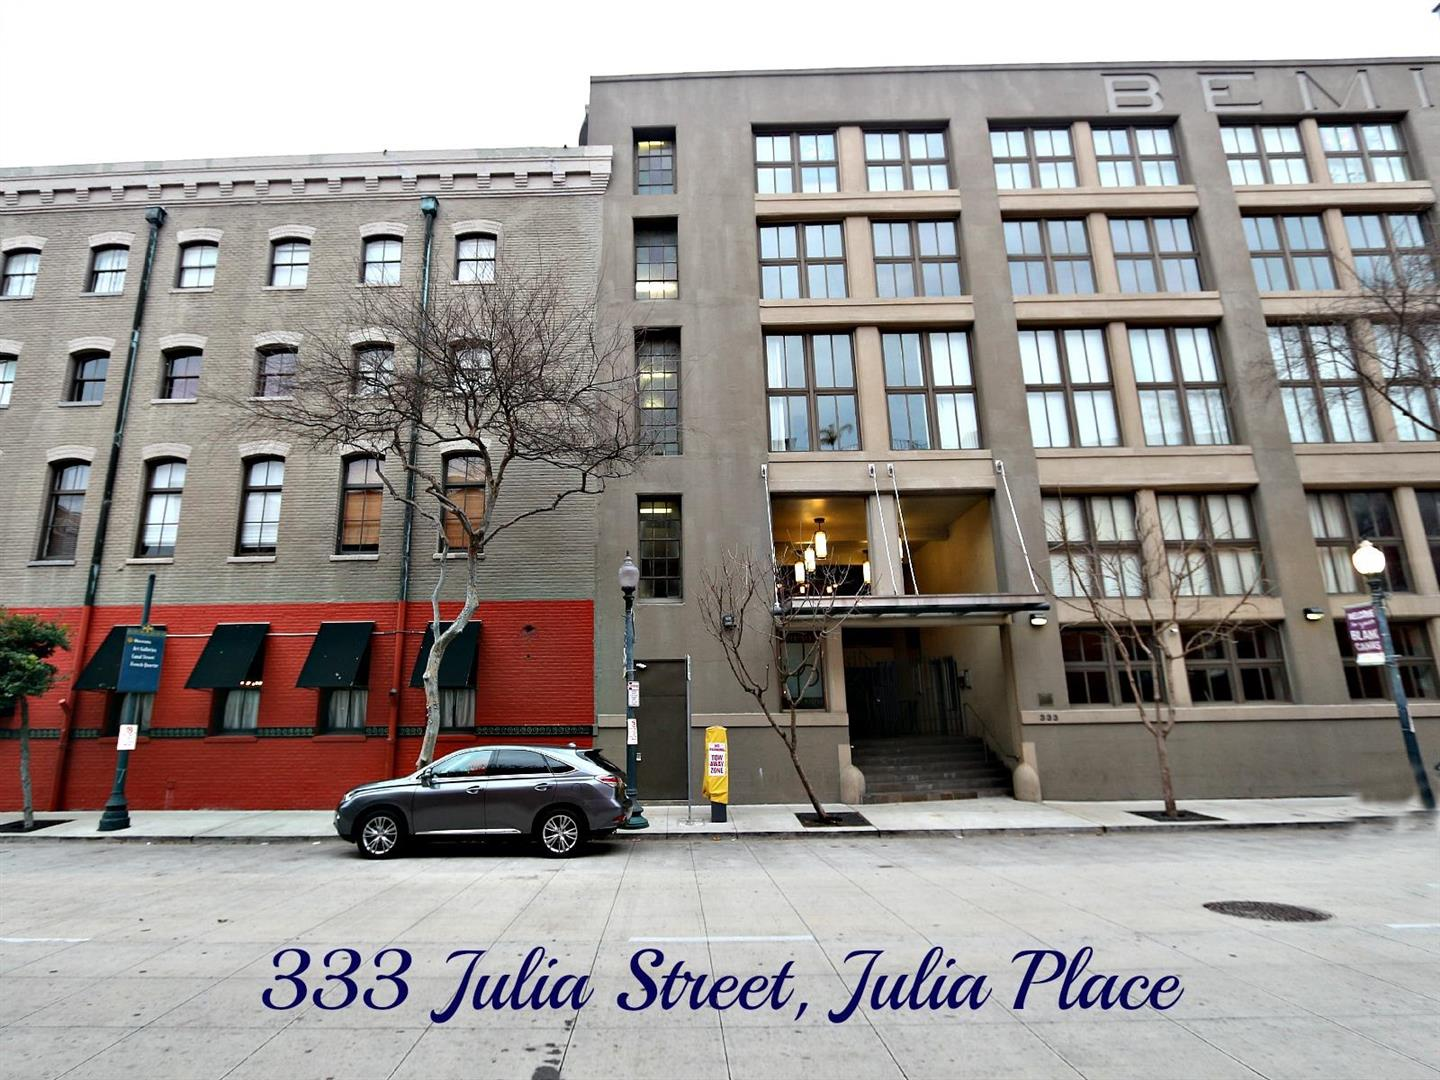 333JuliaSt.209JuliaPlaceCondos.jpg